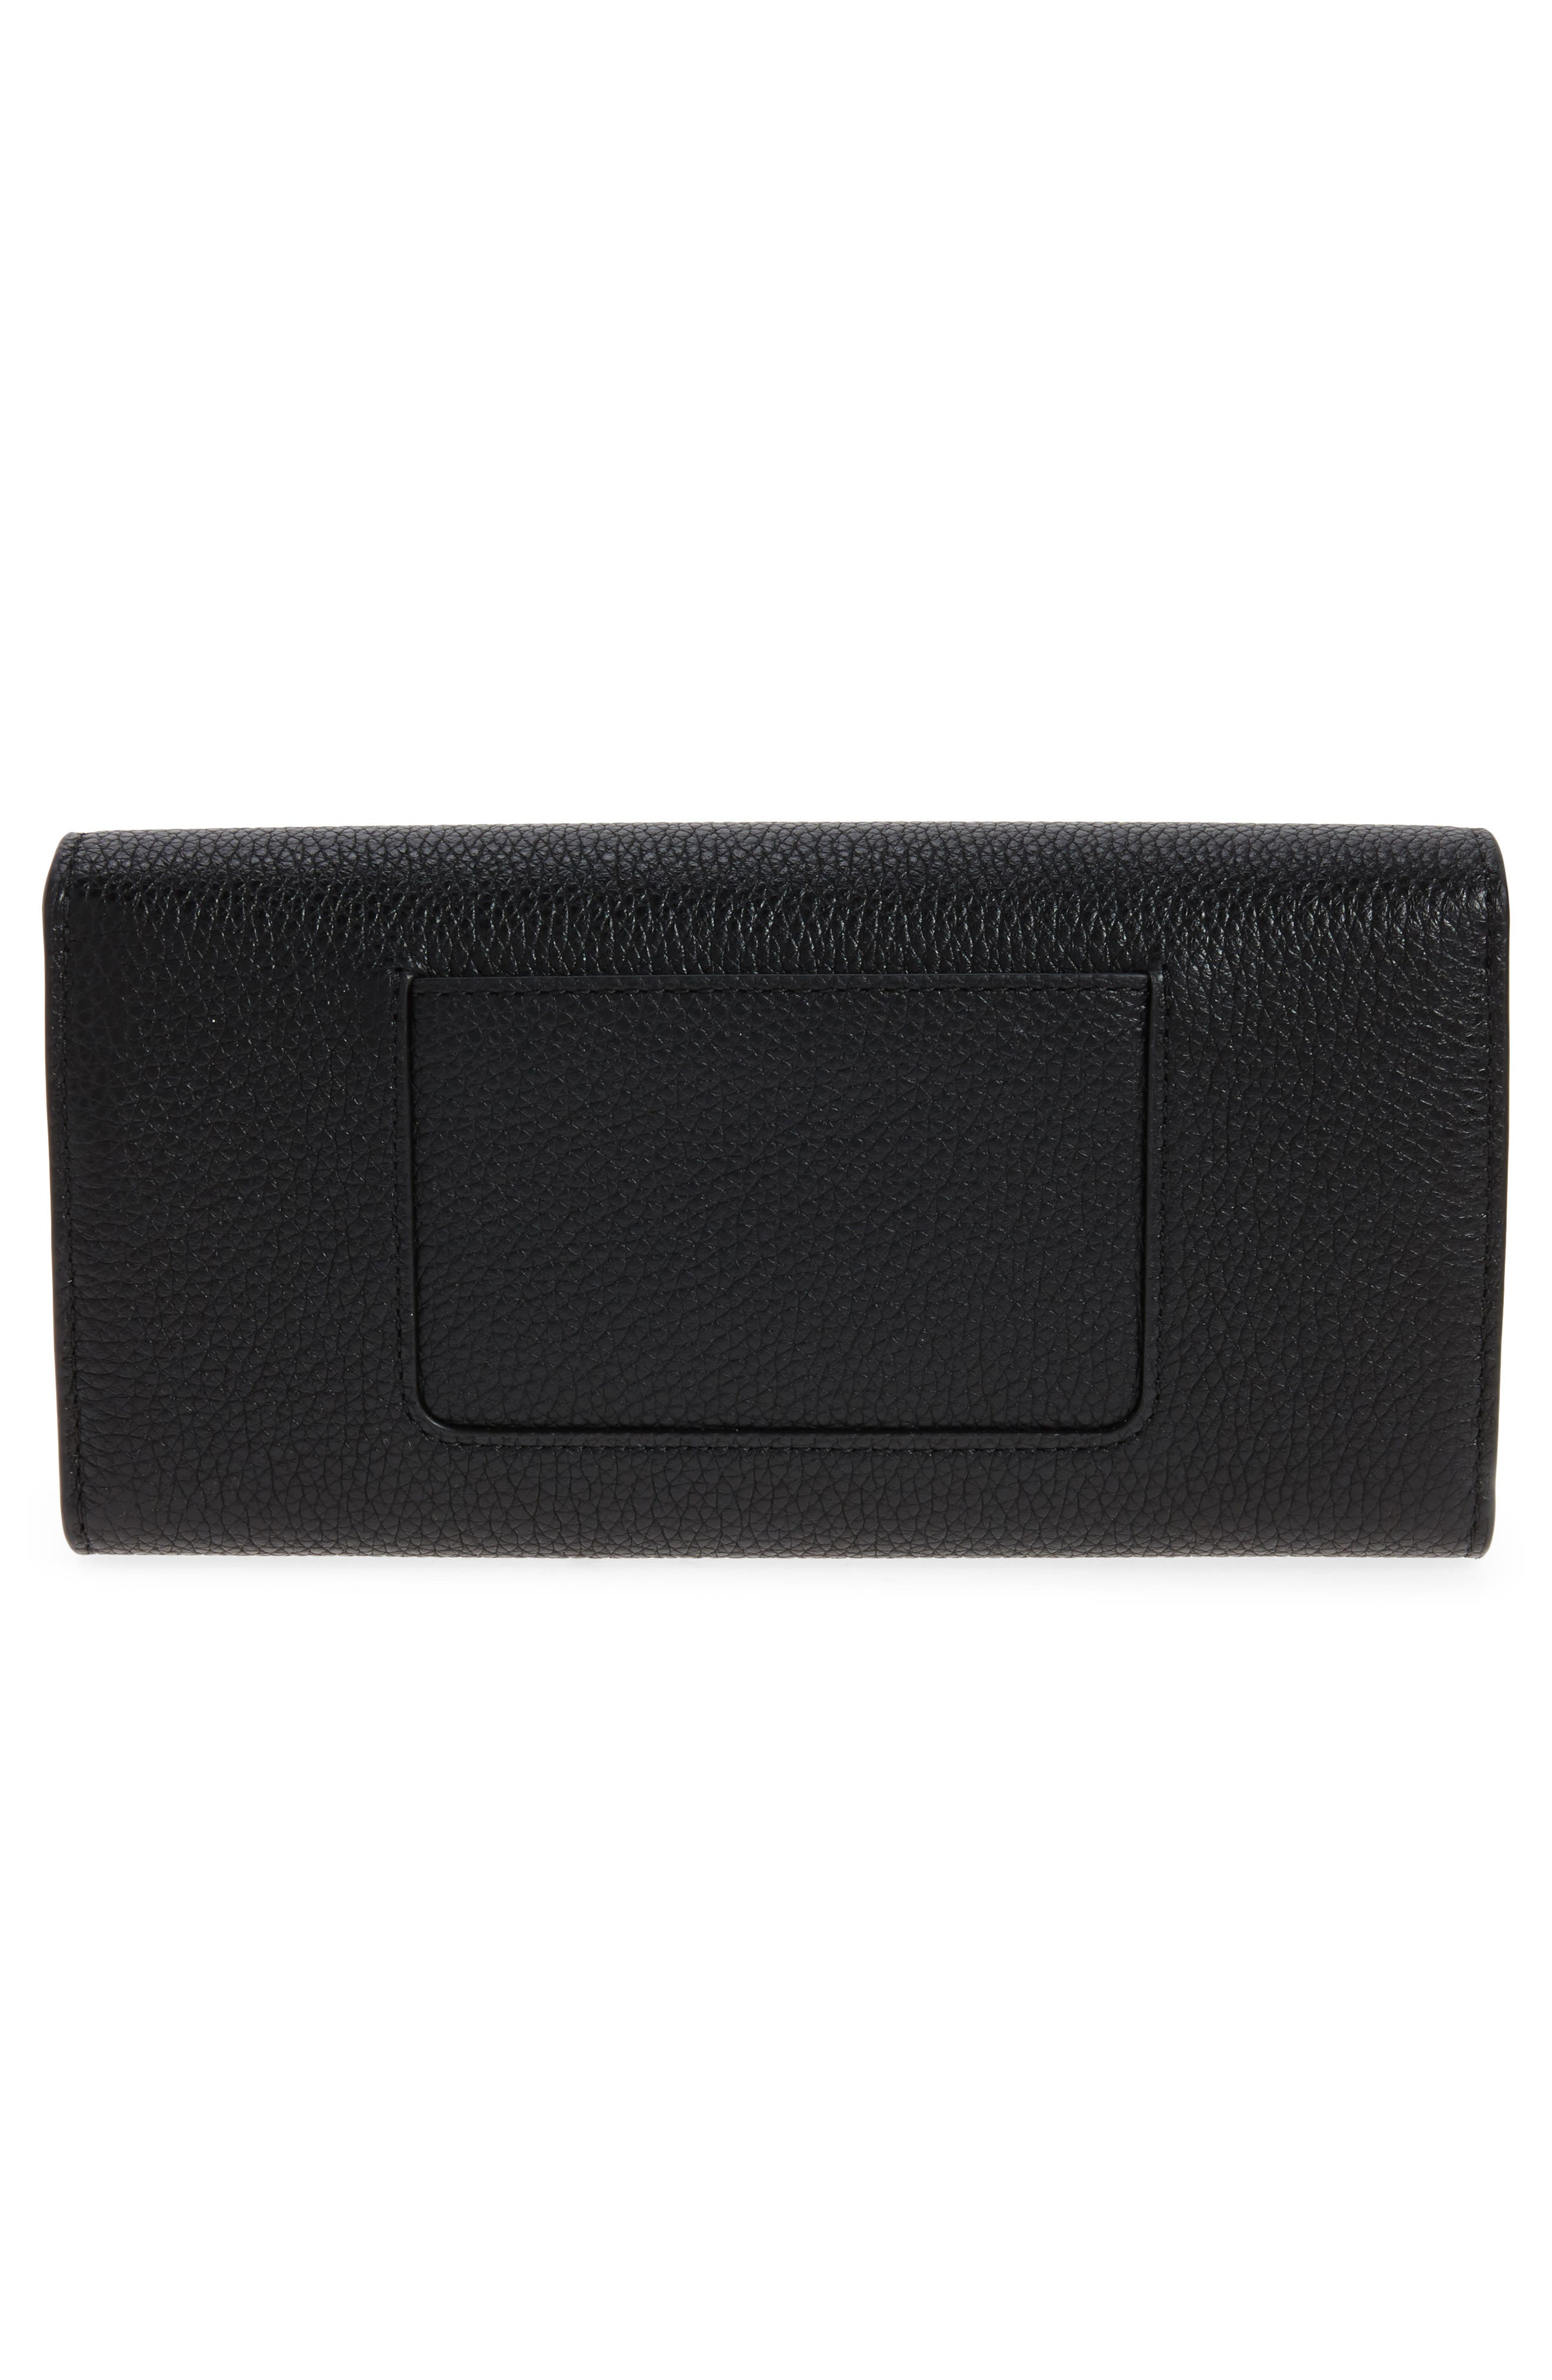 Darley Continental Leather Wallet,                             Alternate thumbnail 4, color,                             Black